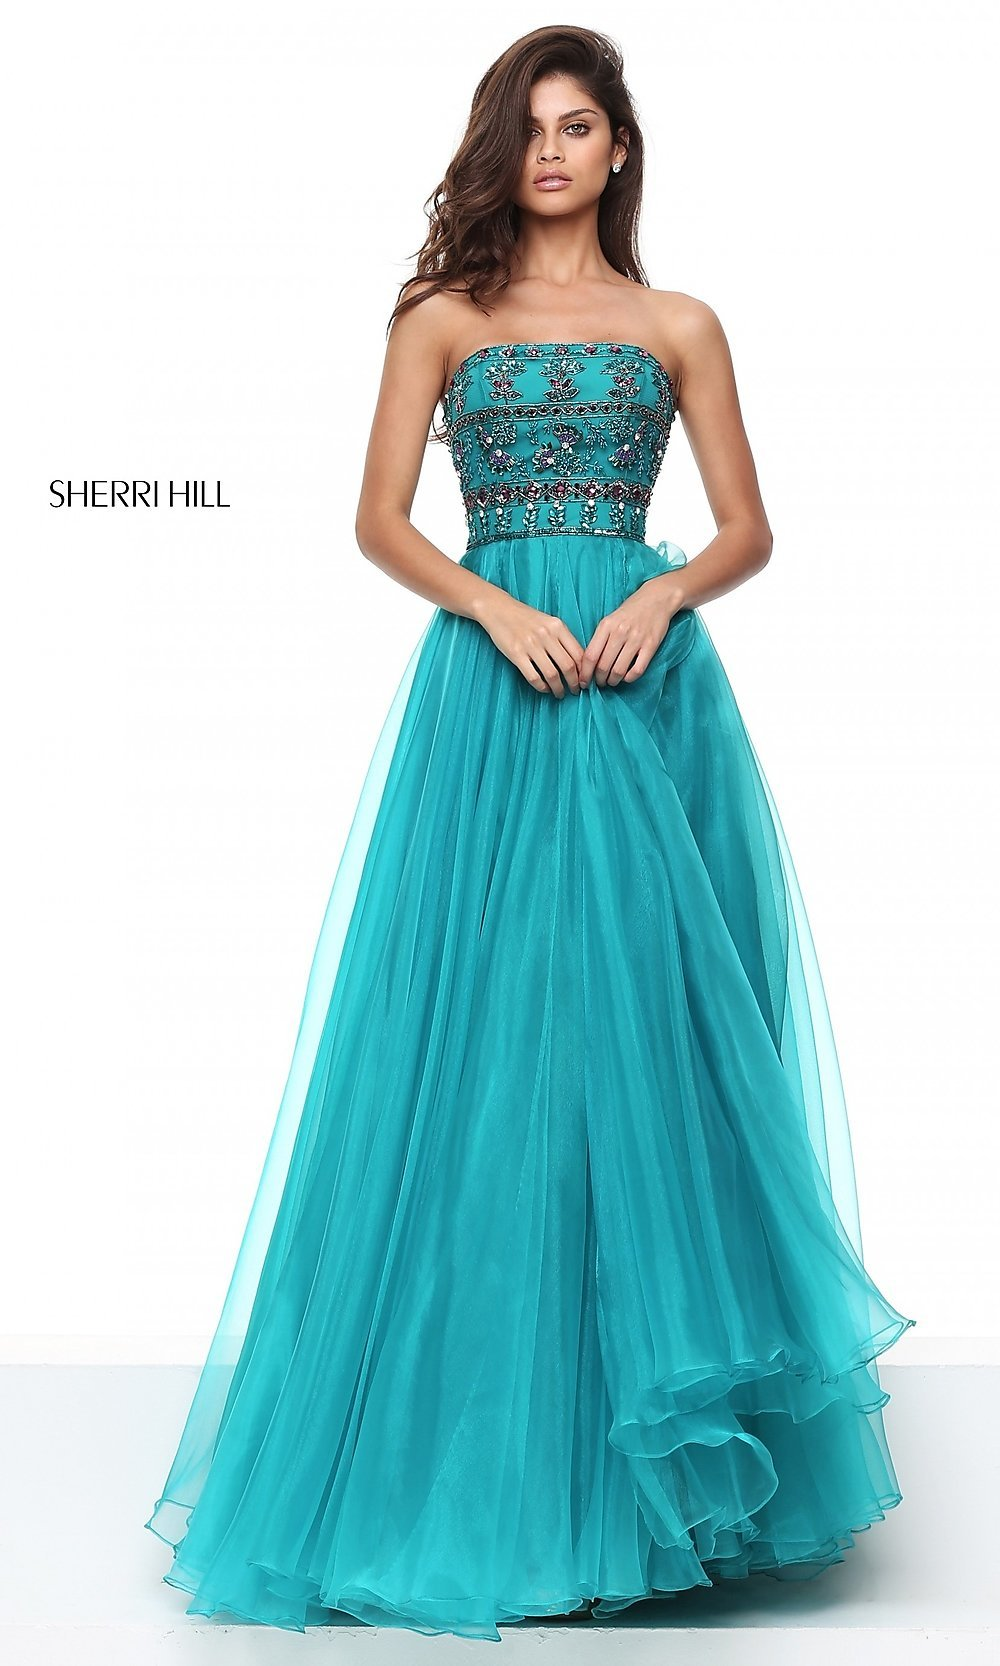 Jeweled-Bodice Sherri Hill Prom Ball Gown - PromGirl